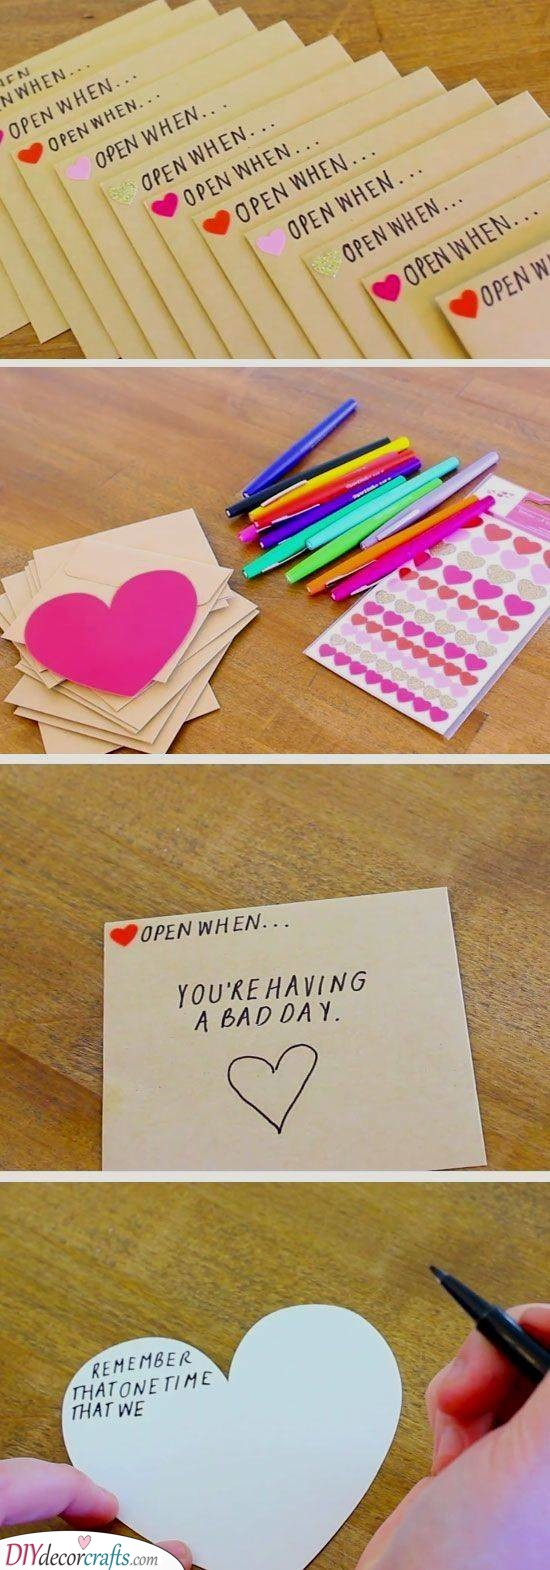 Messages for Bad Times - Personal Present Ideas